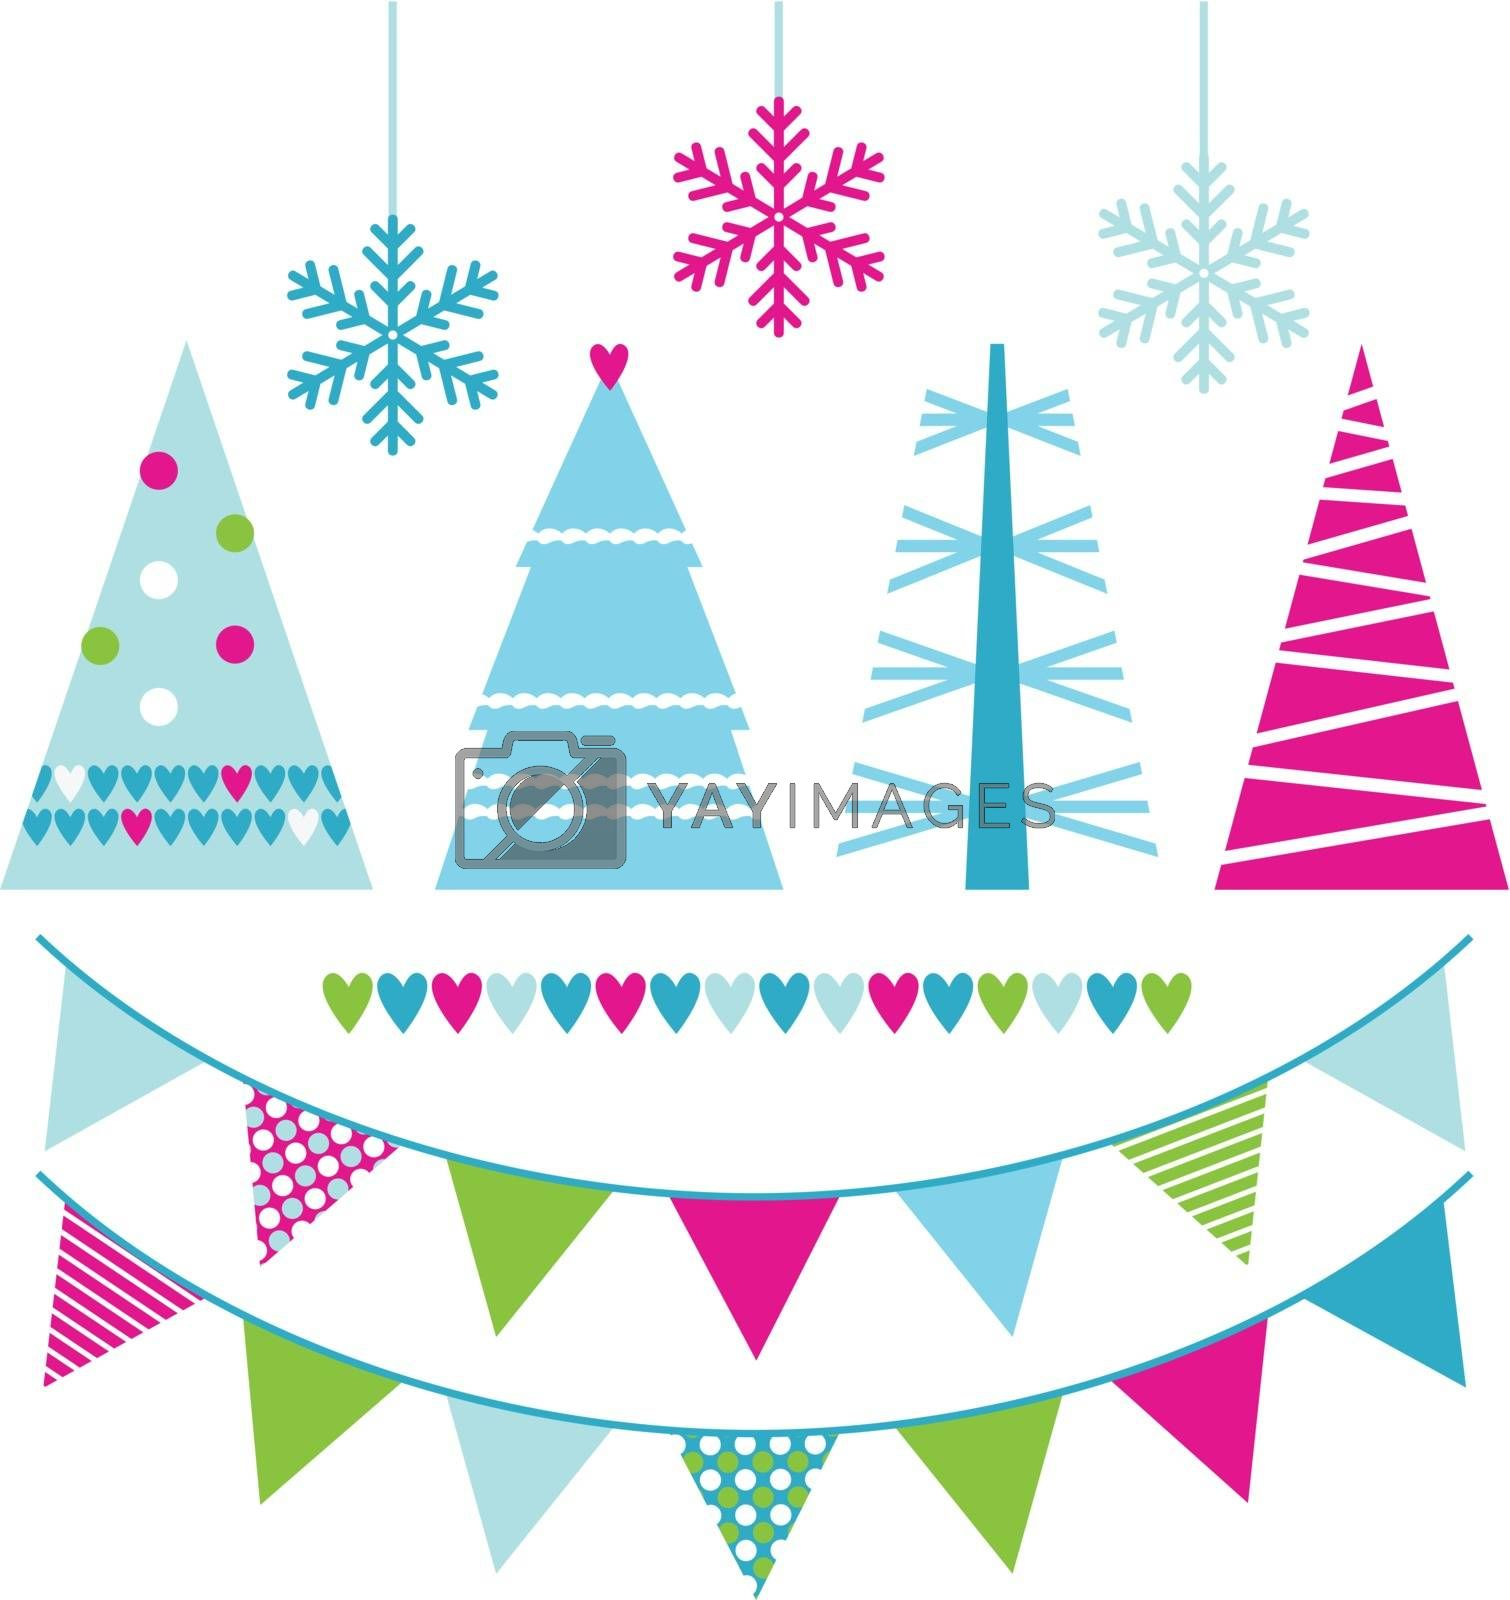 Colorful patterned Xmas trees set. Vector illustration